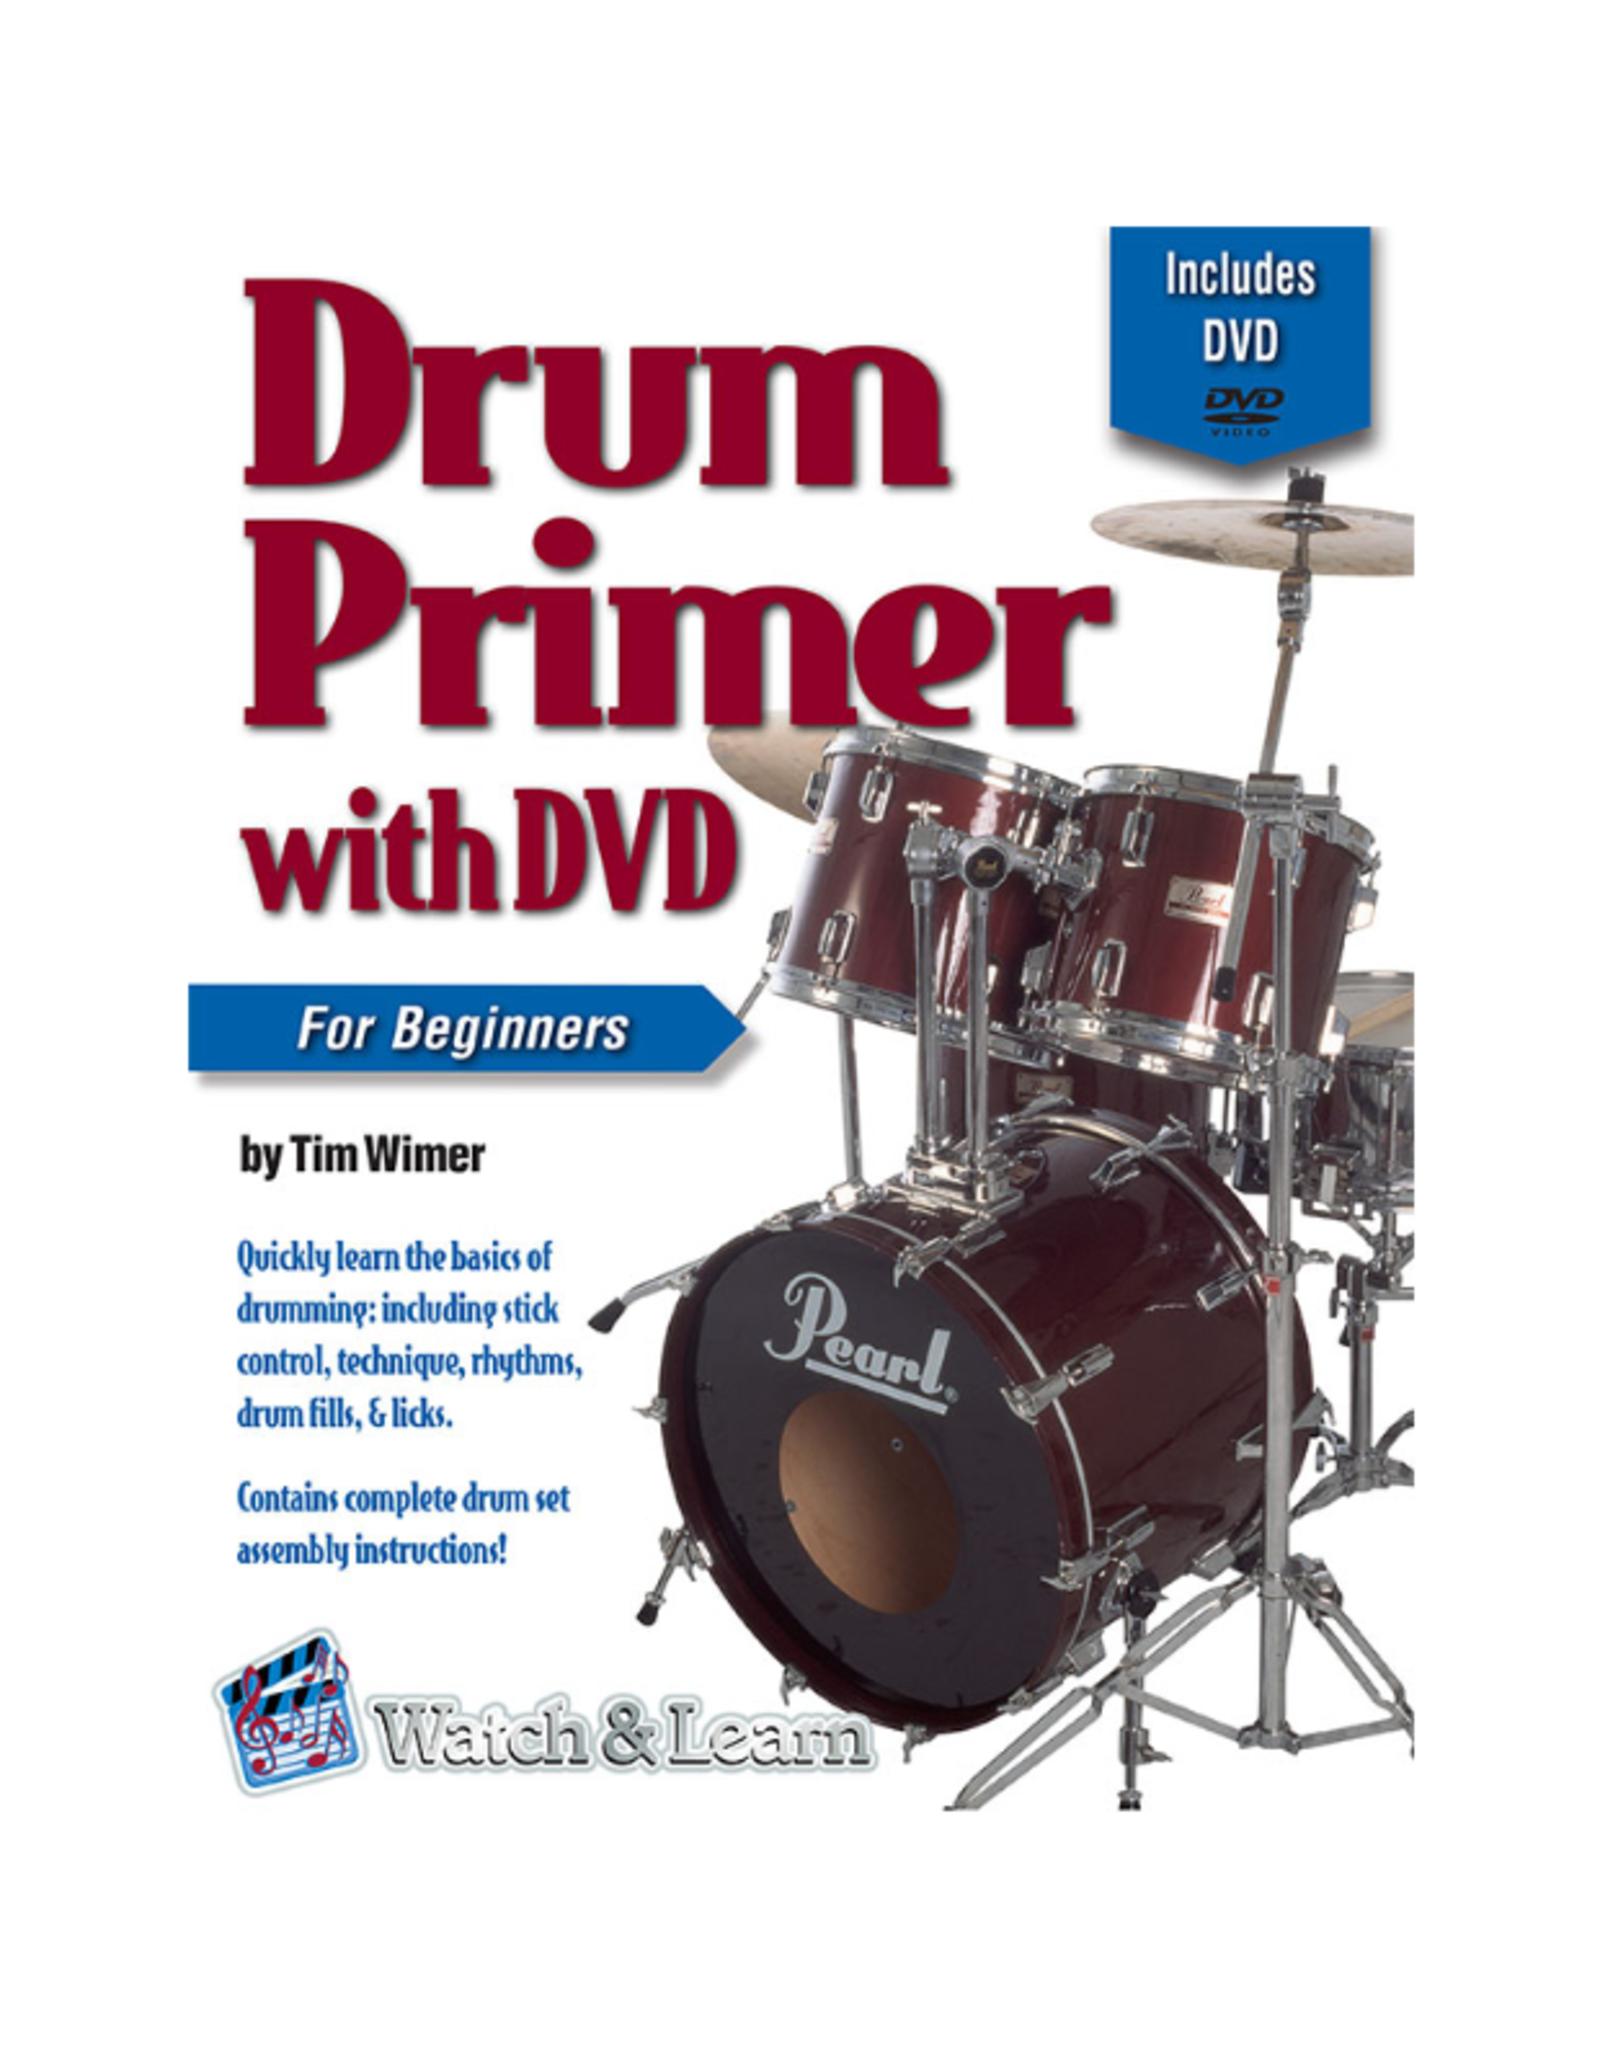 Watch & Learn Watch & Learn Drum Primer Deluxe Edition